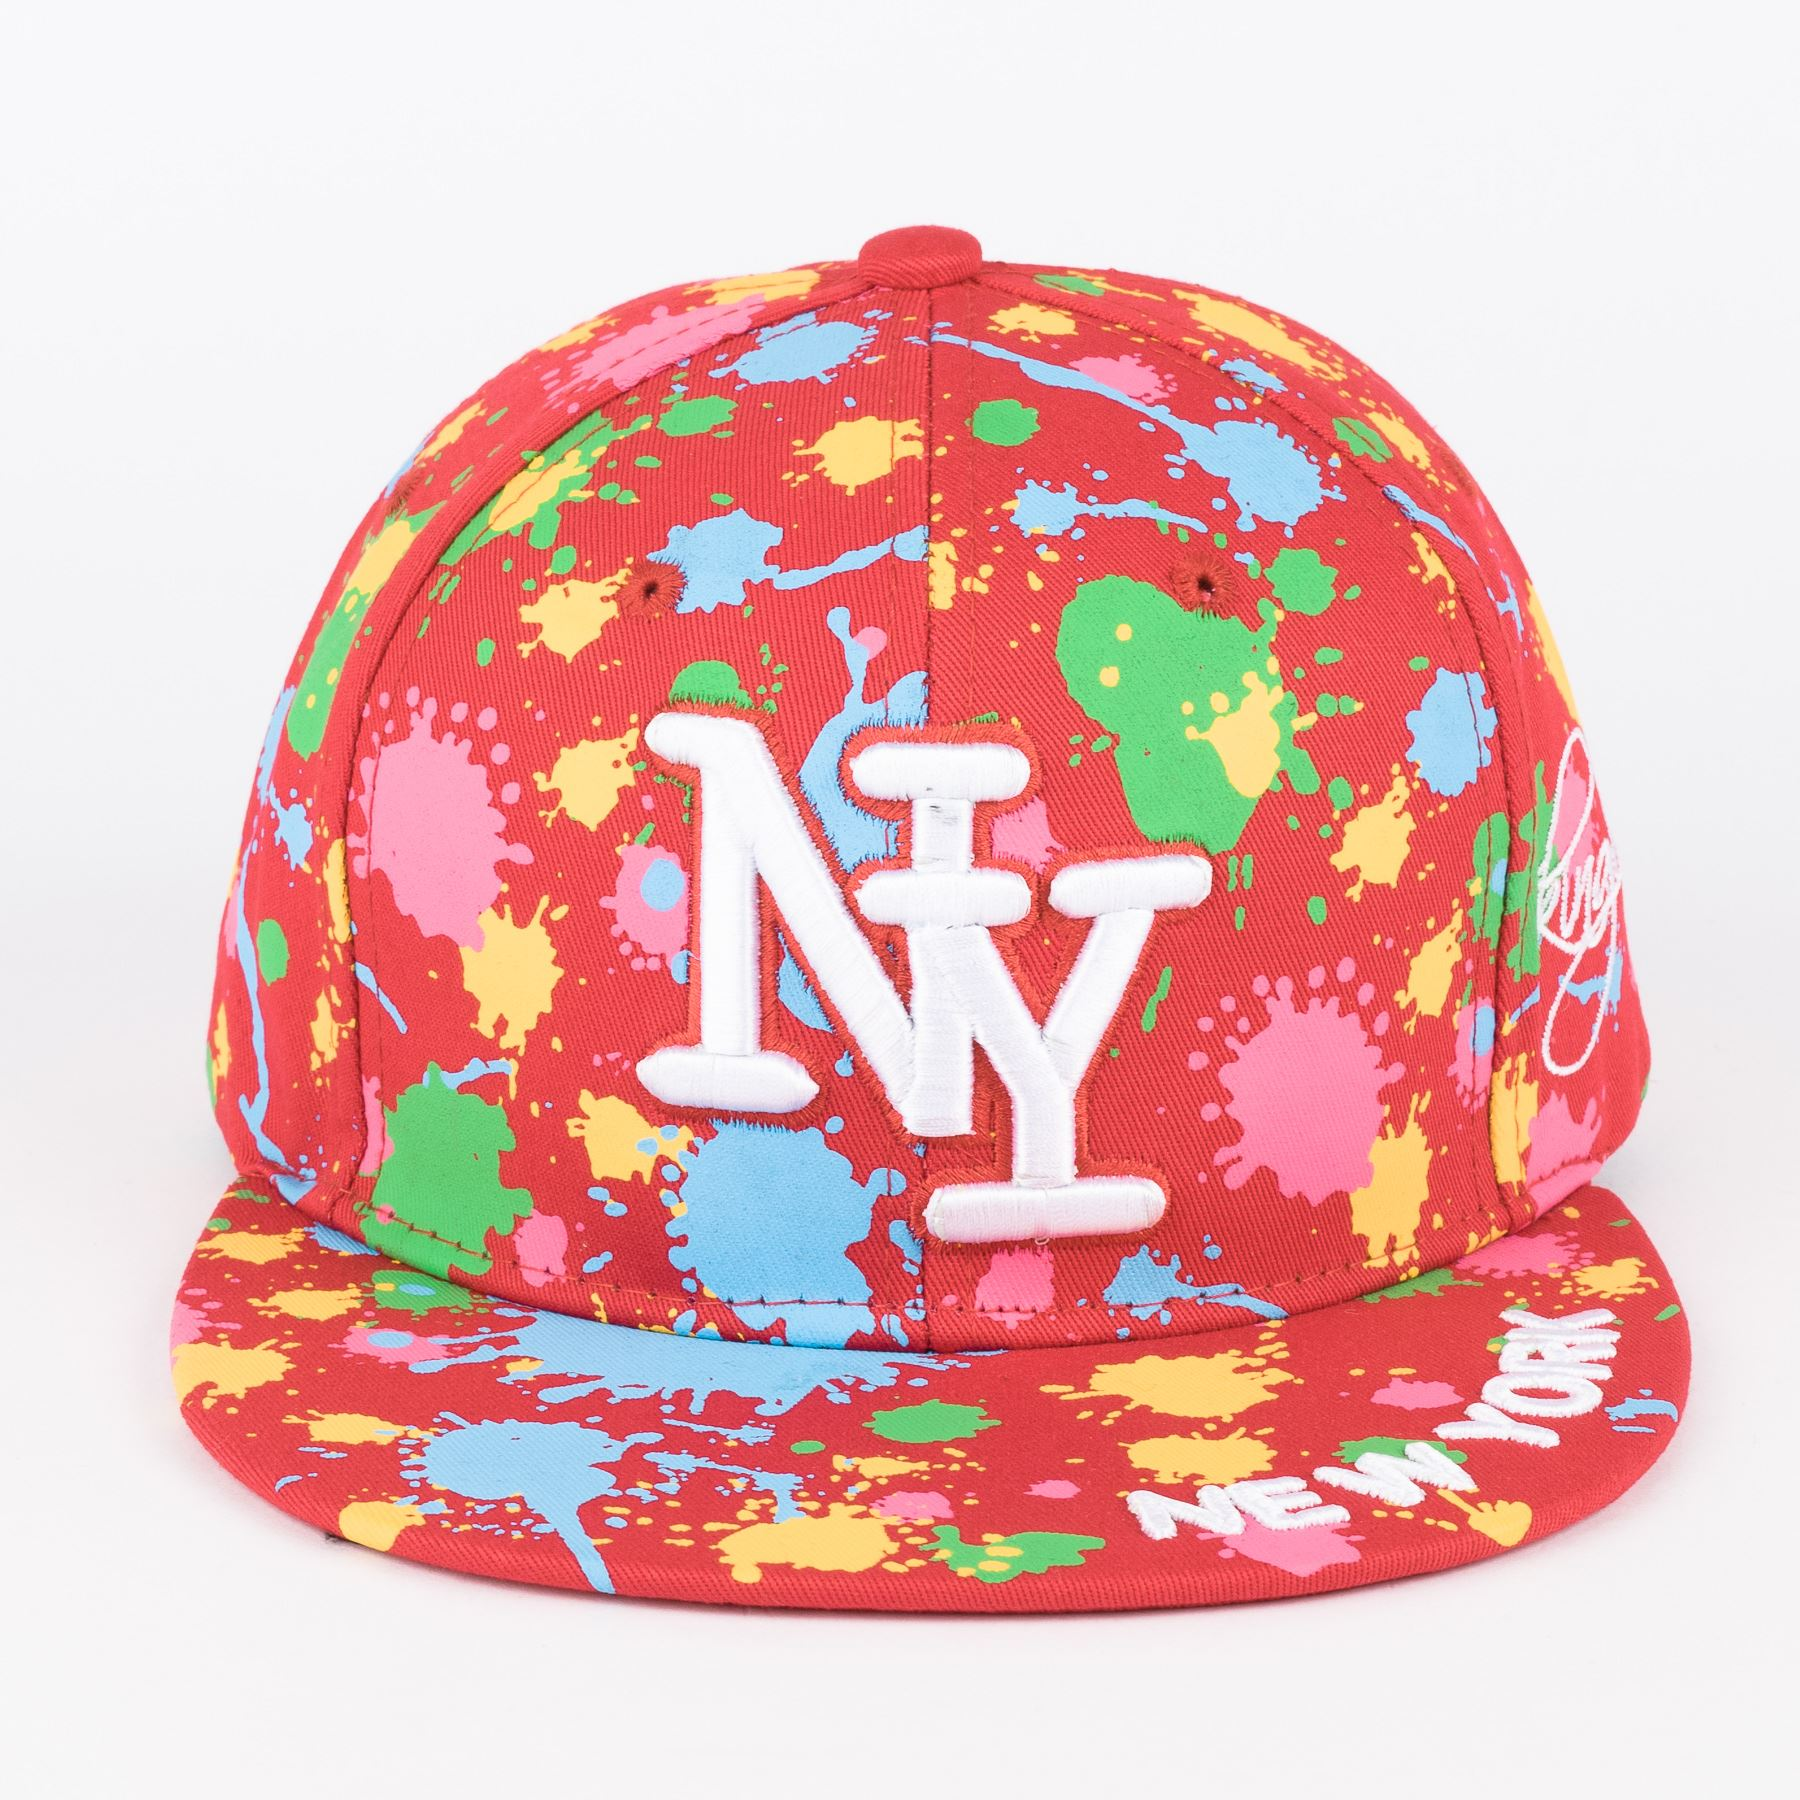 a327627b626 NY on Paint Splash Snapback Embroidered Hip hop Hat